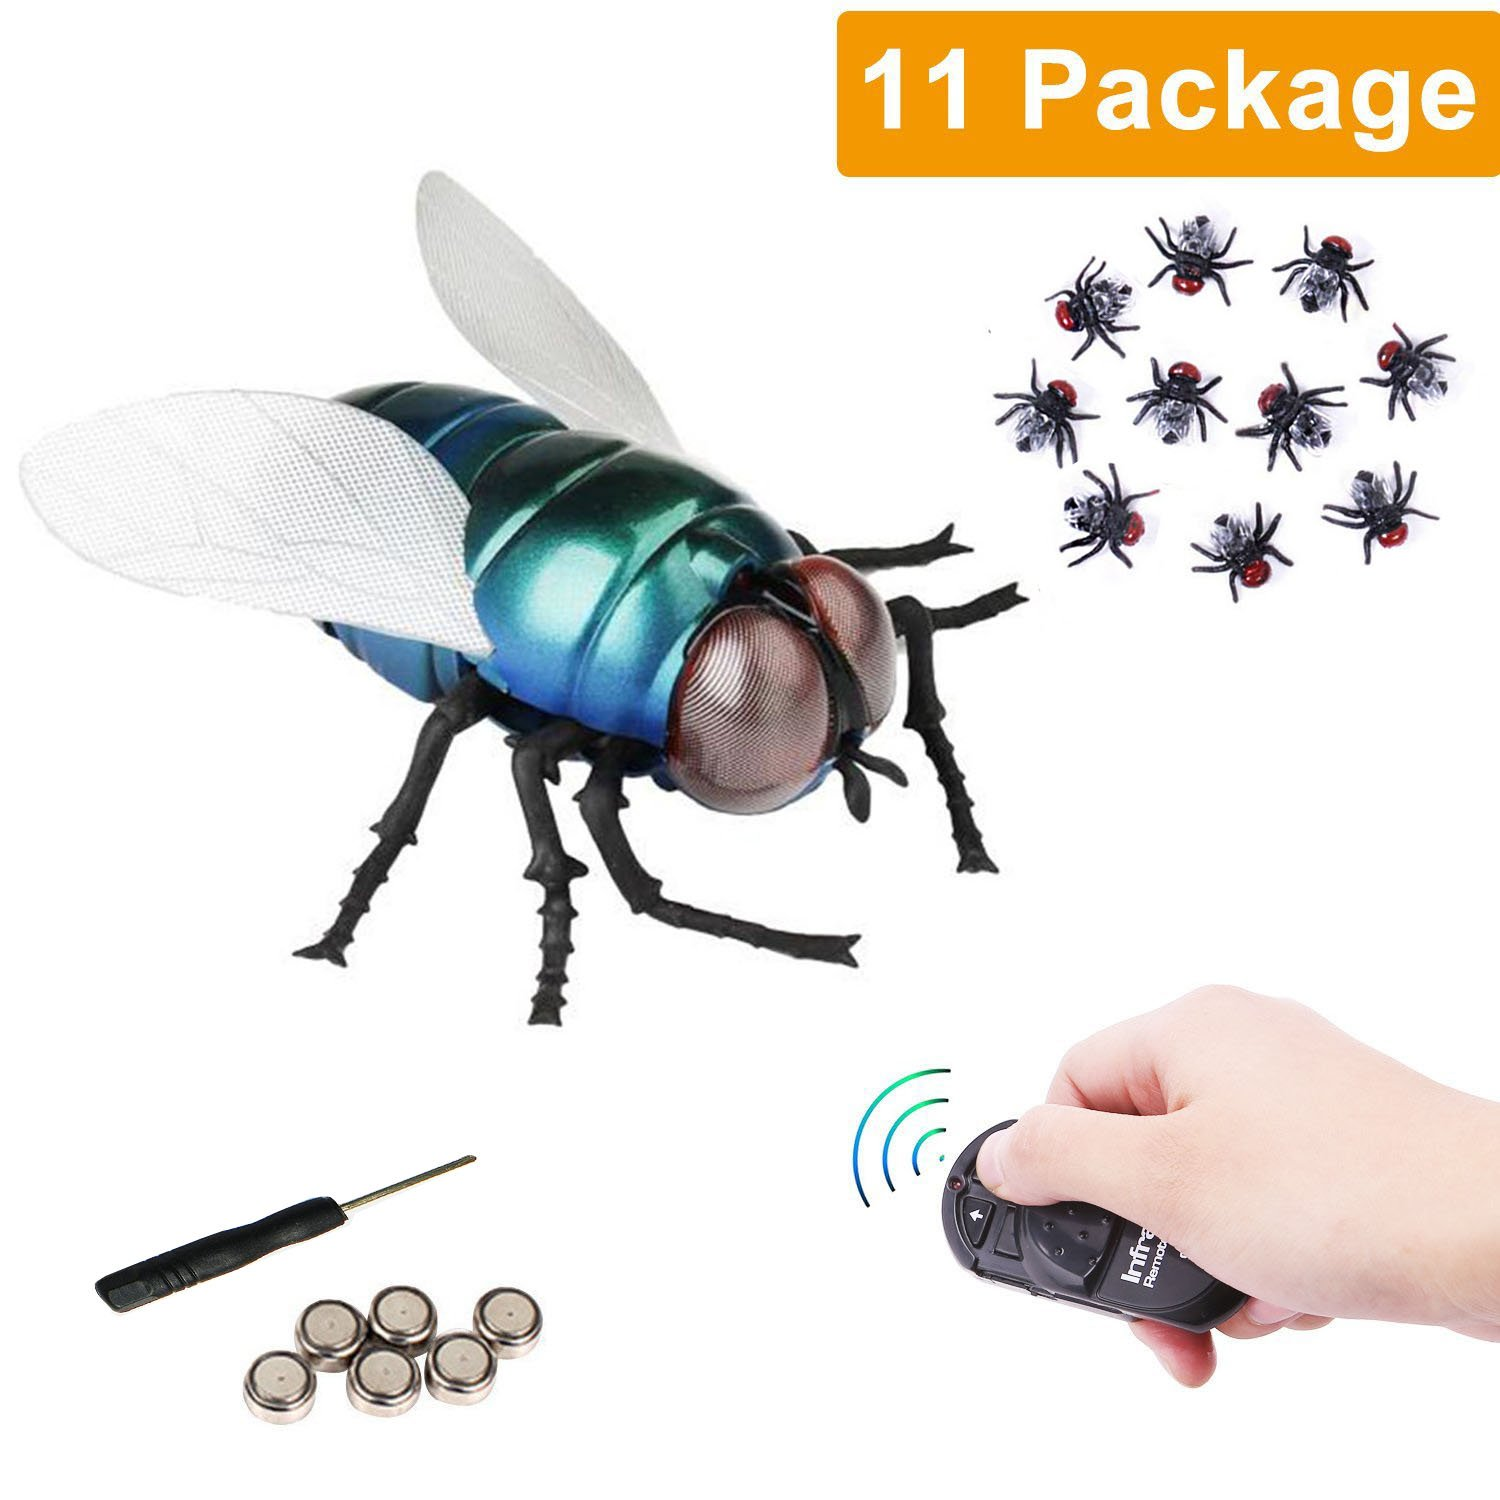 NiGHT LiONS TECH RC Infrared Remote Control Fake The Flies , Novelty Fake Plastic The Flies Look Real Prank Toys Insects Joke Scary Trick Toy Party April Fools' Day Gift for Kids/Friends Cat Dog Toy by NiGHT LiONS TECH